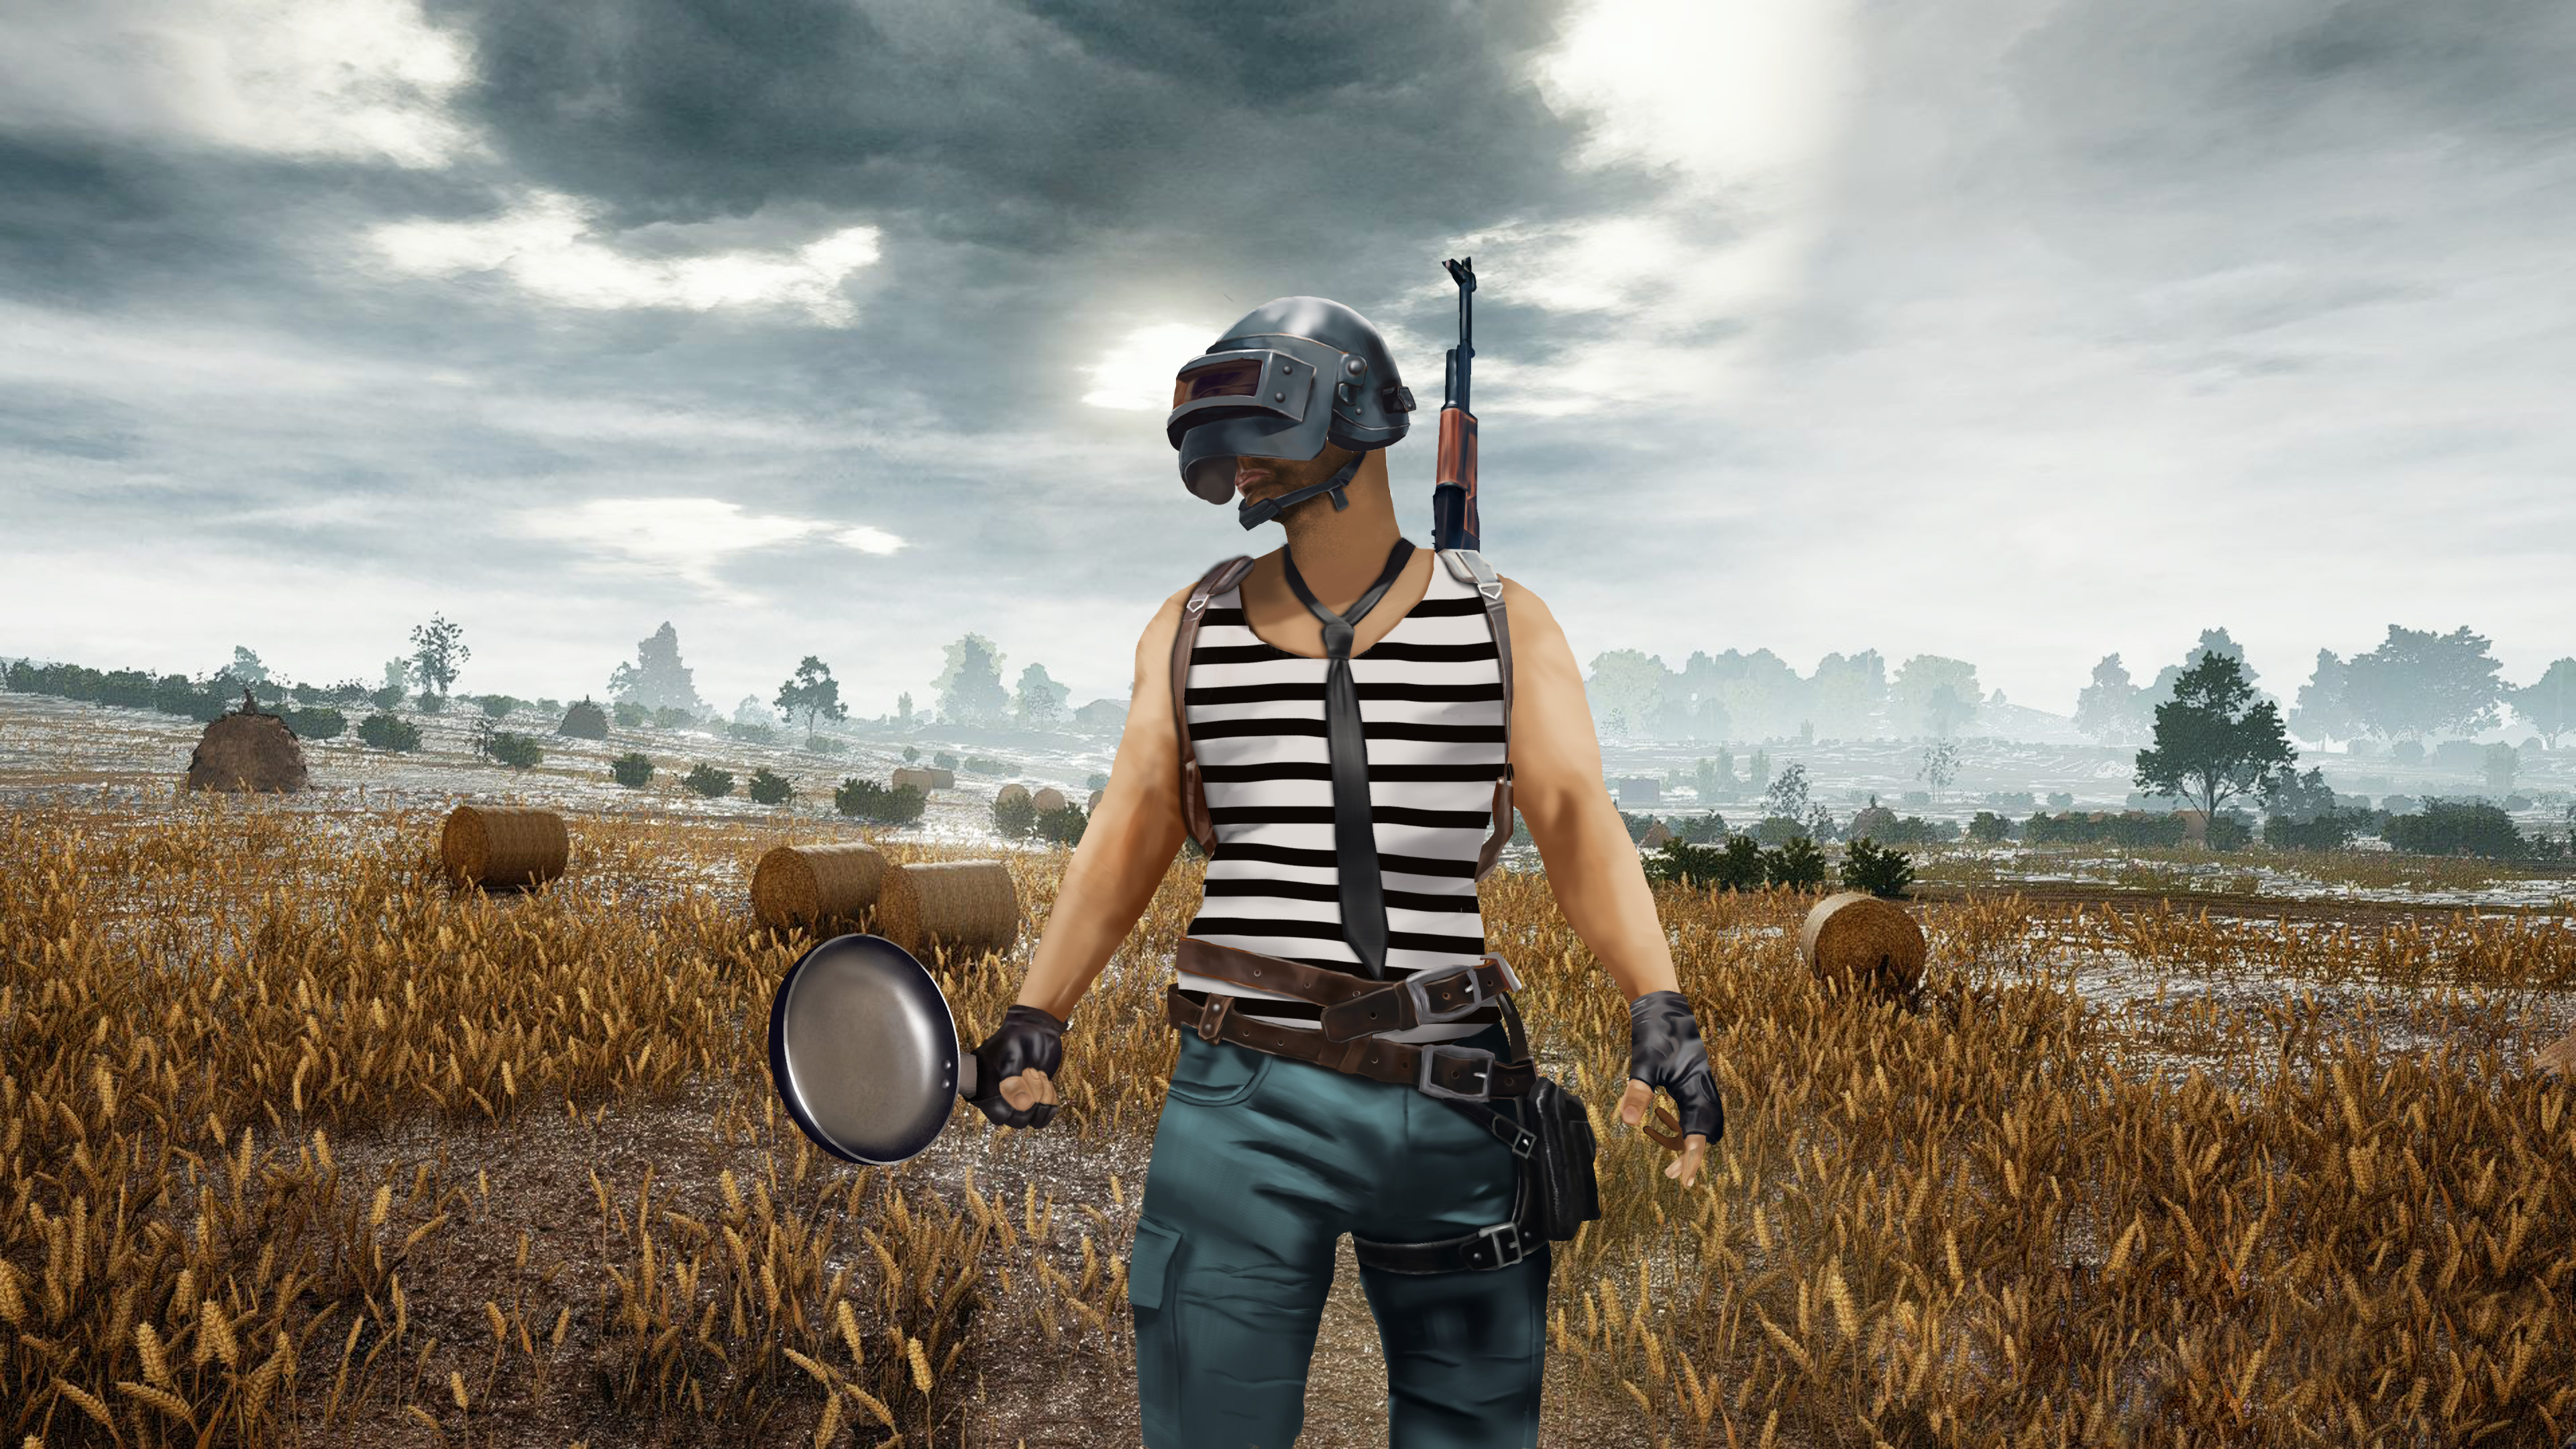 2048x1152 Pubg Bike Rider 4k 2048x1152 Resolution Hd 4k: PUBG Helmet And Pan Player, HD Games, 4k Wallpapers